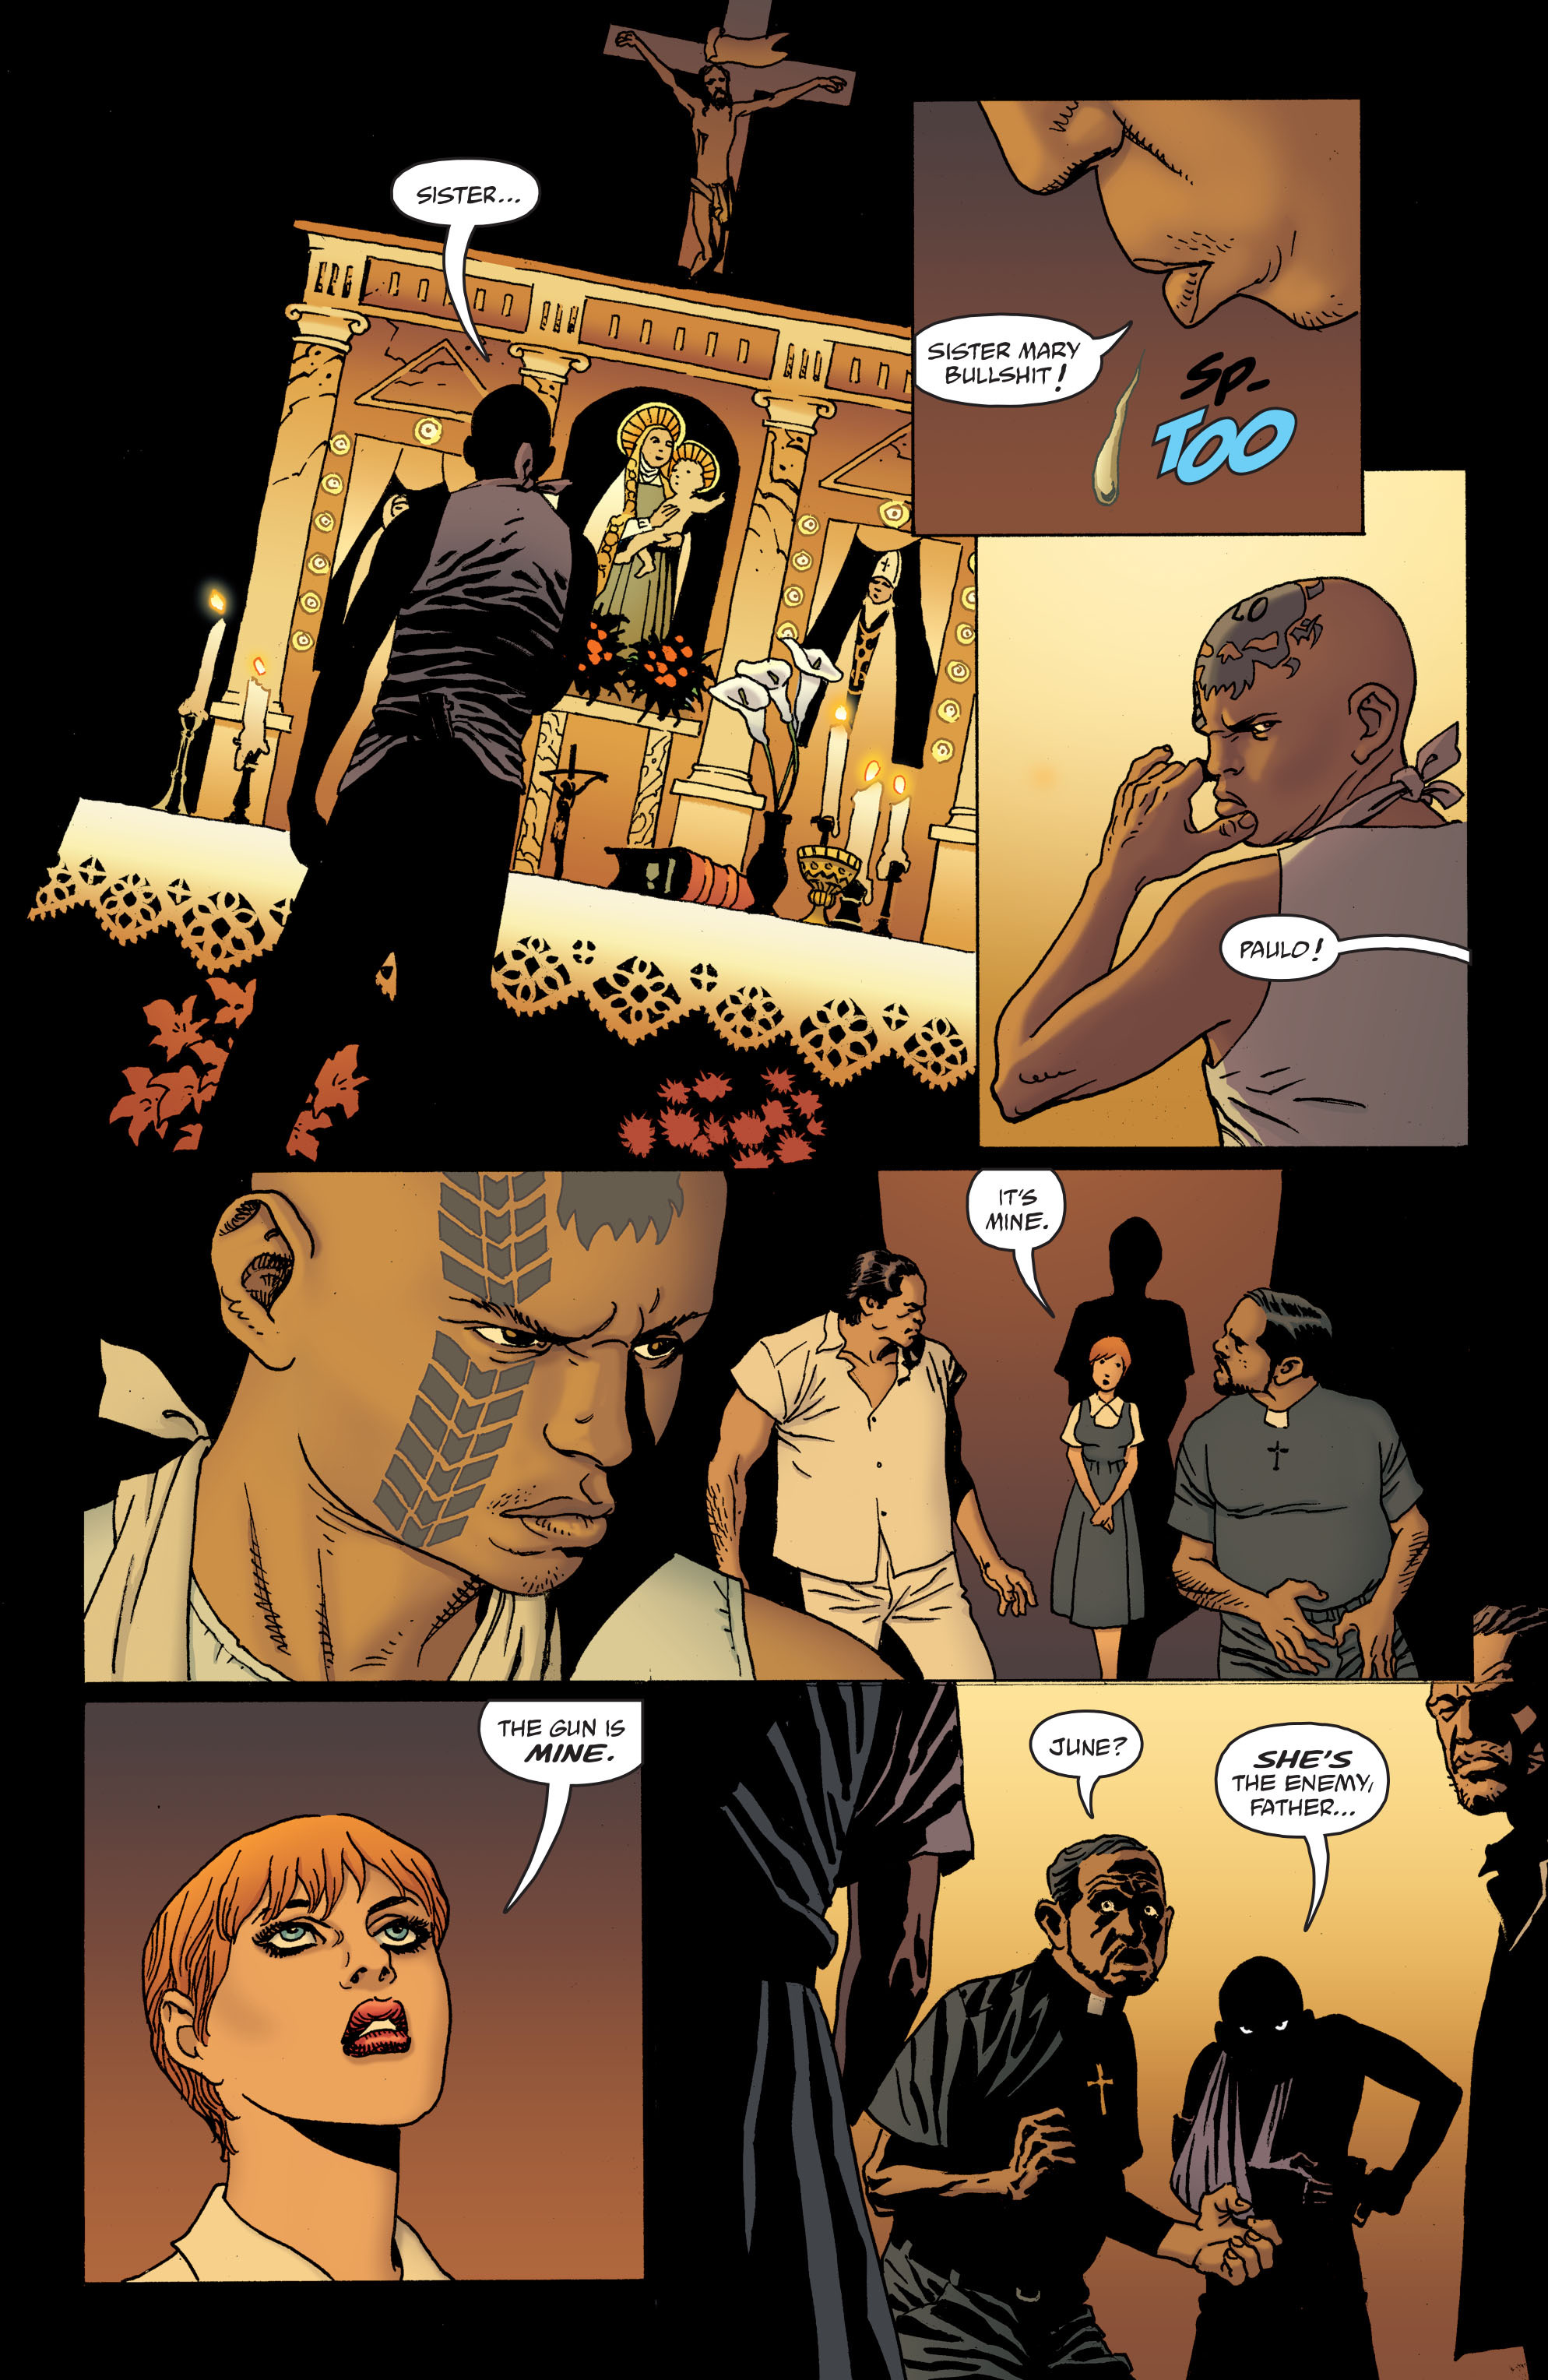 100 Bullets: Brother Lono Full Page 127